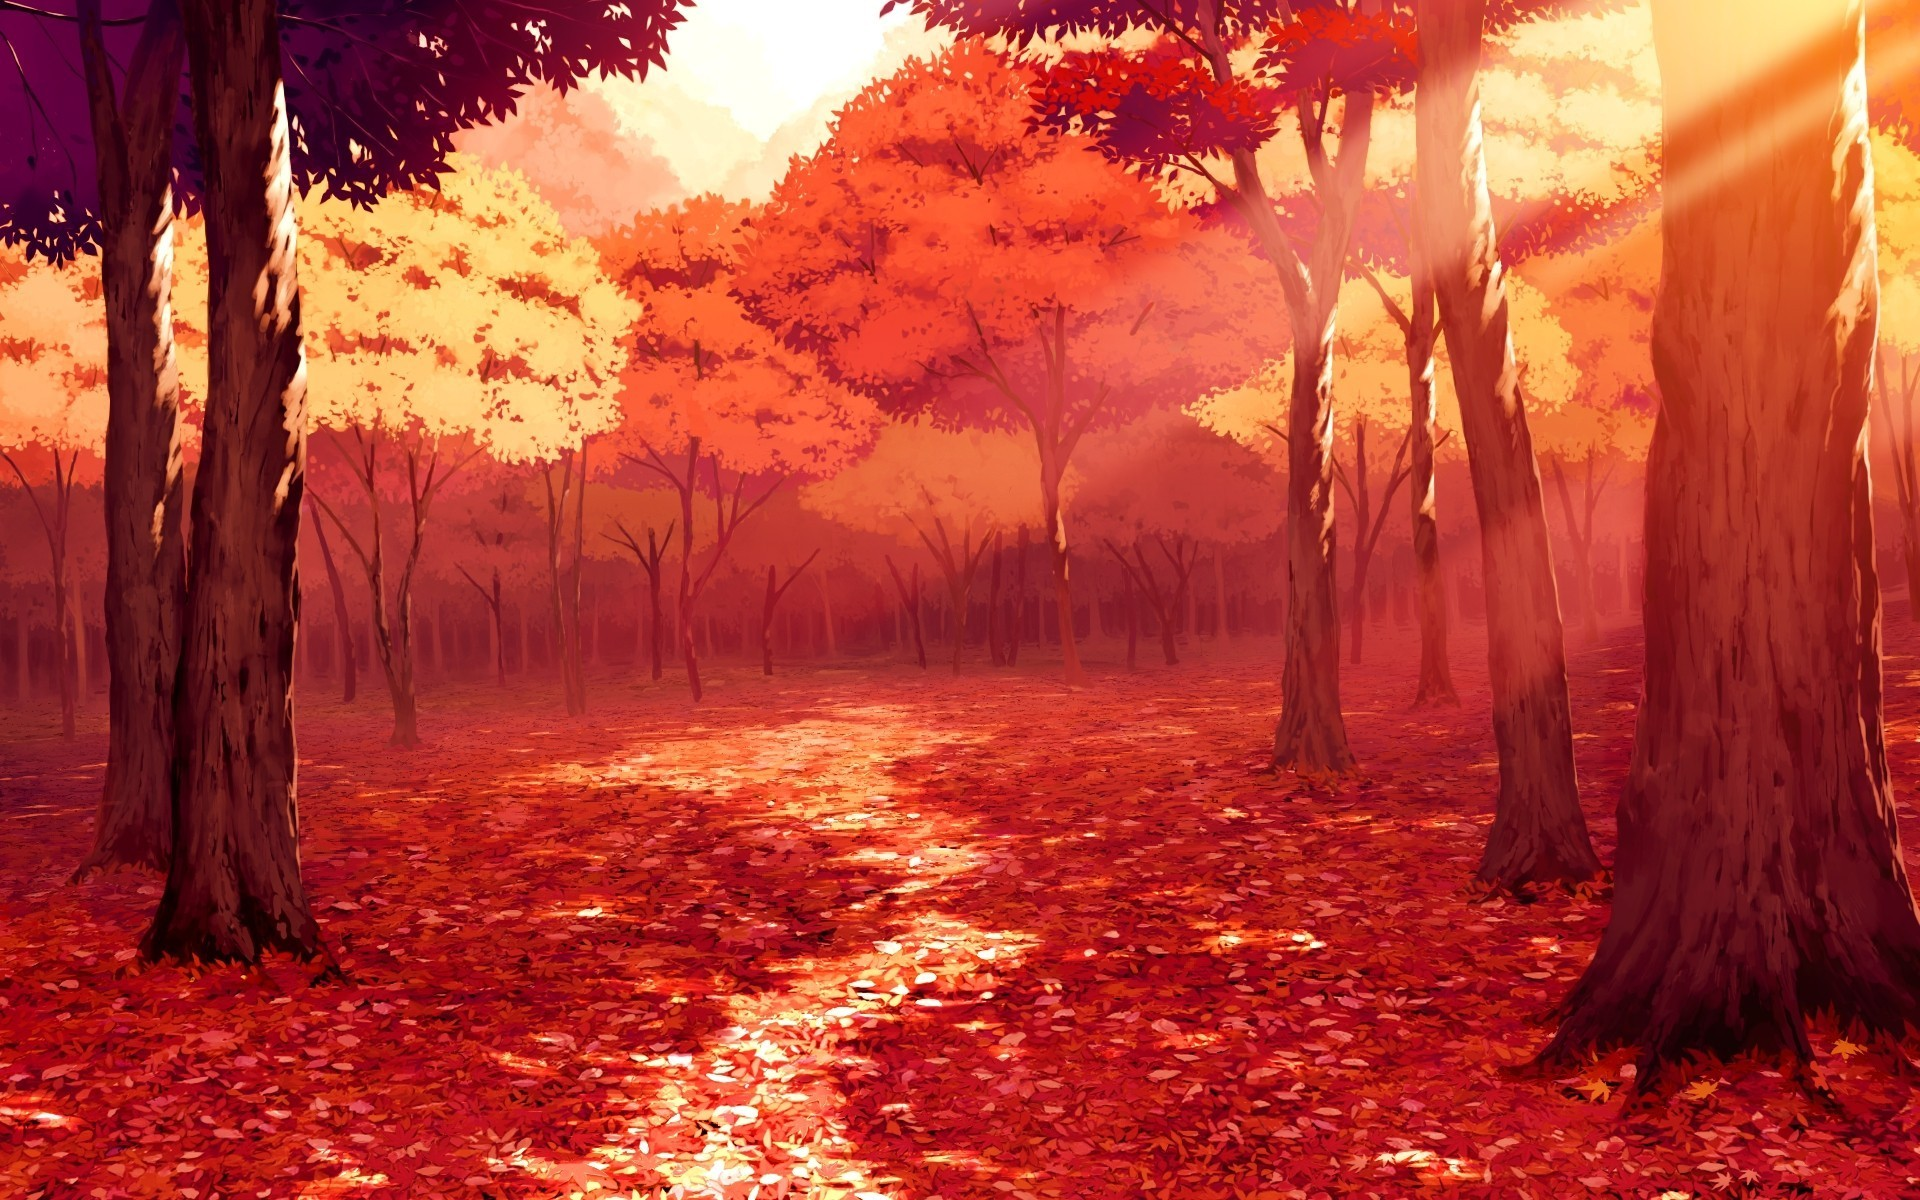 Animated Scenery Autumn Red Trees